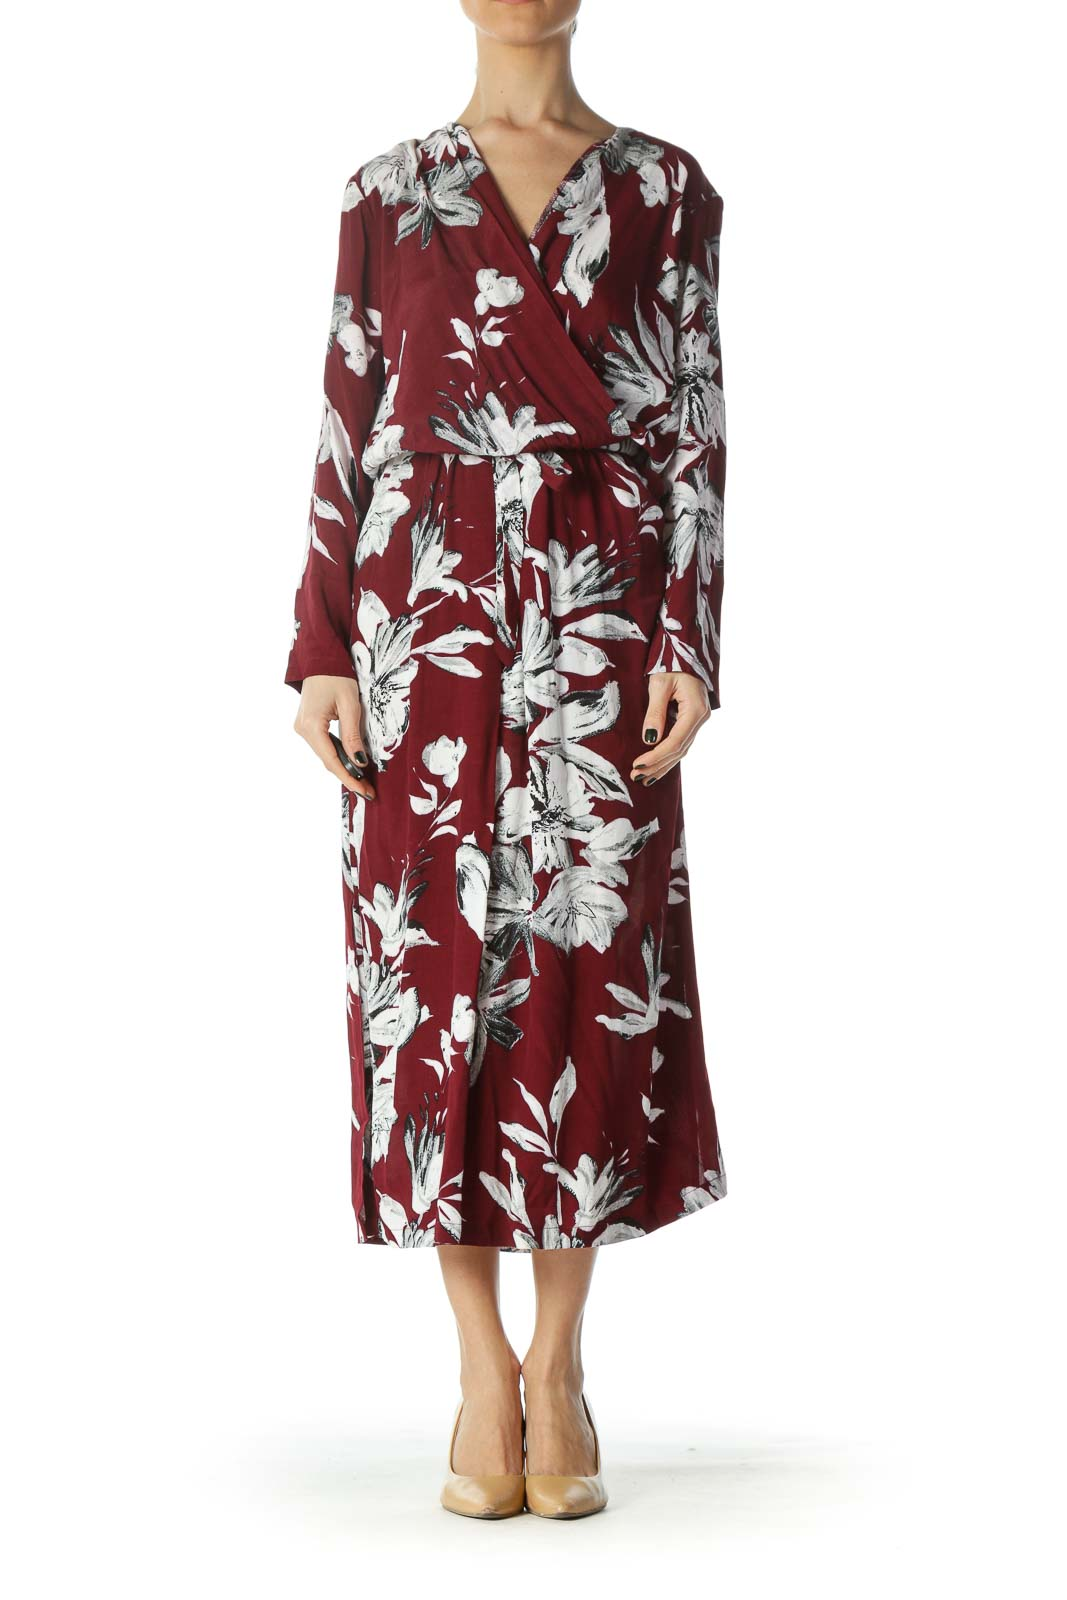 New Red Black and White Floral Dress  Front